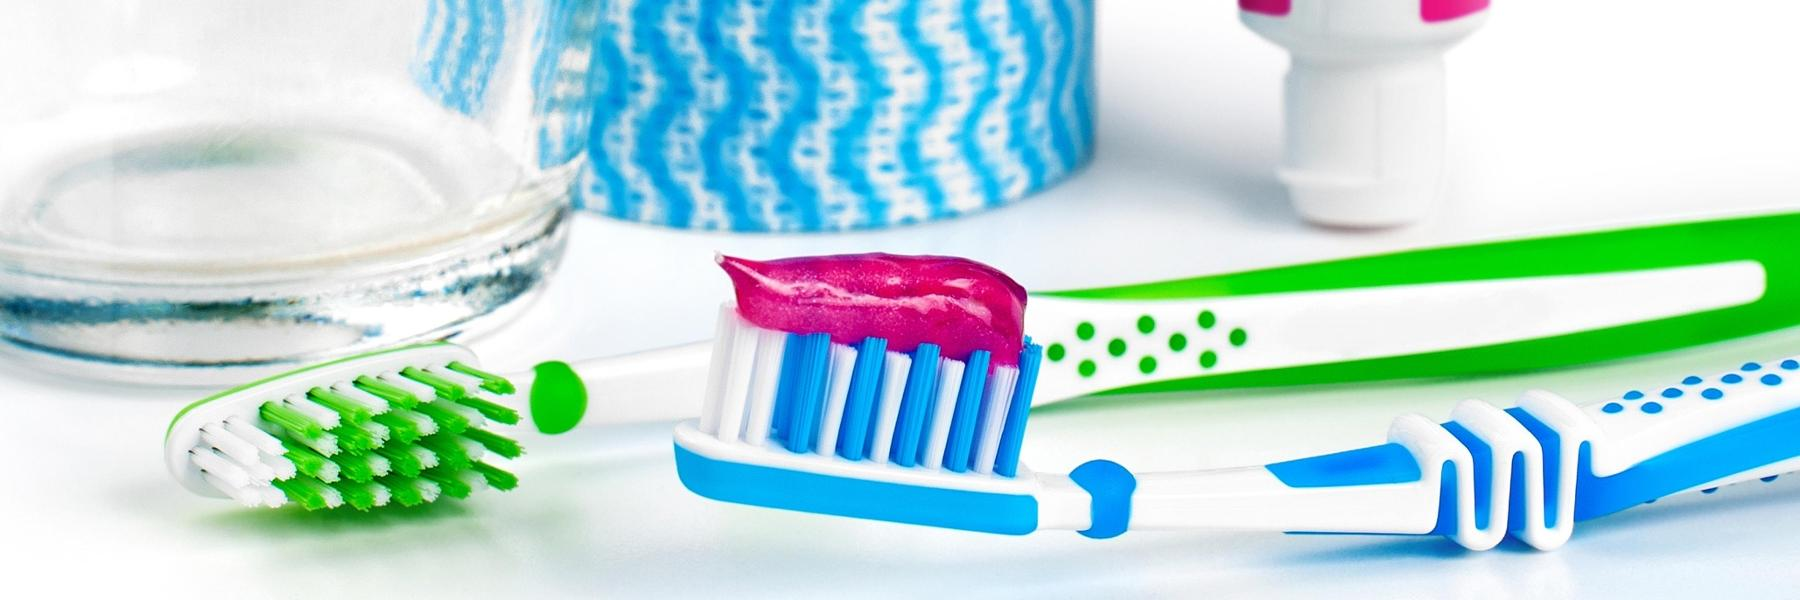 Toothbrushes | Clinton Township Dentist